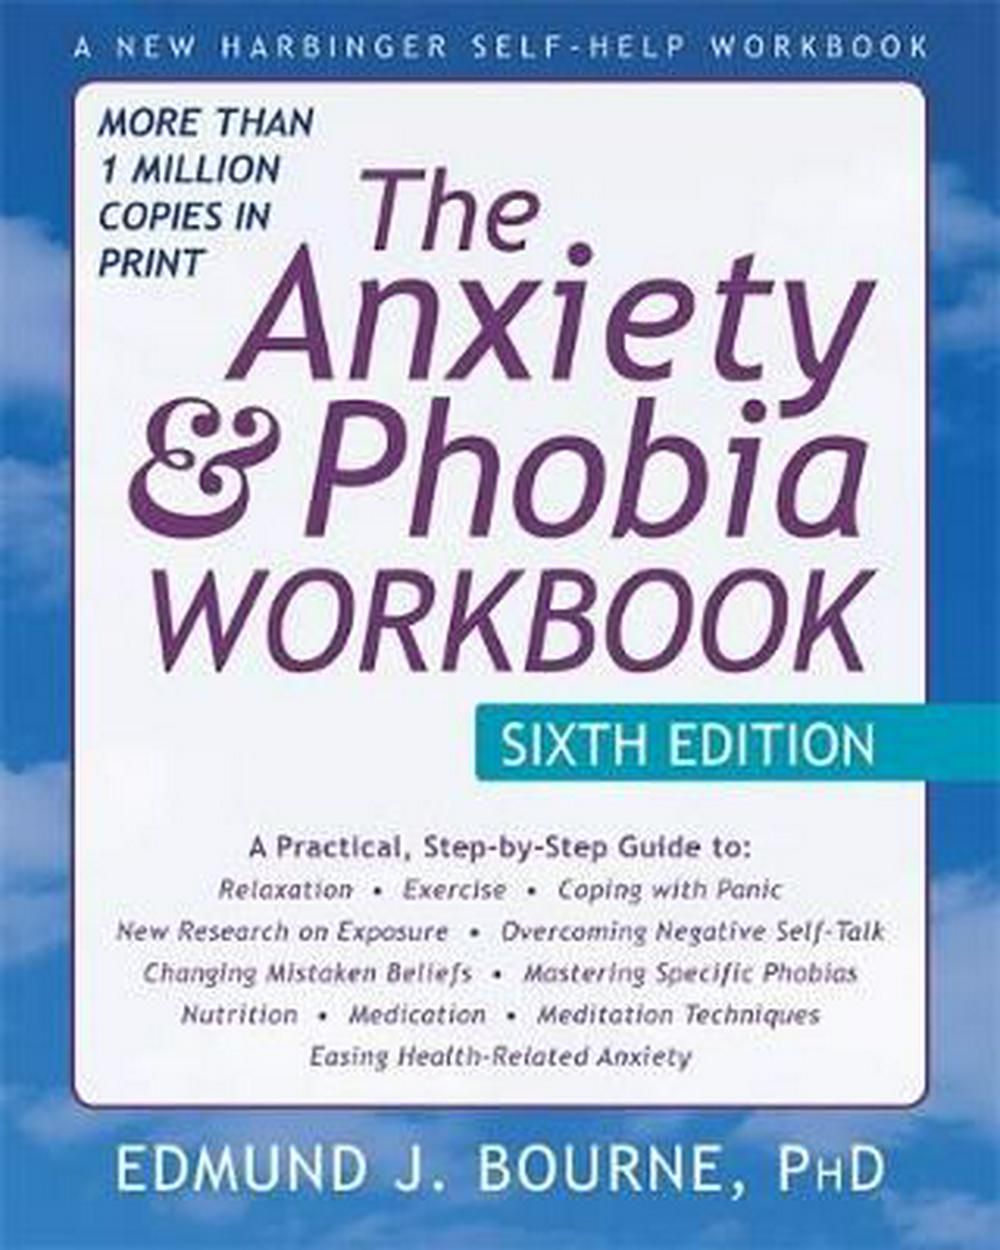 Image result for The Anxiety and Phobia Workbook - Edmund J. Bourne